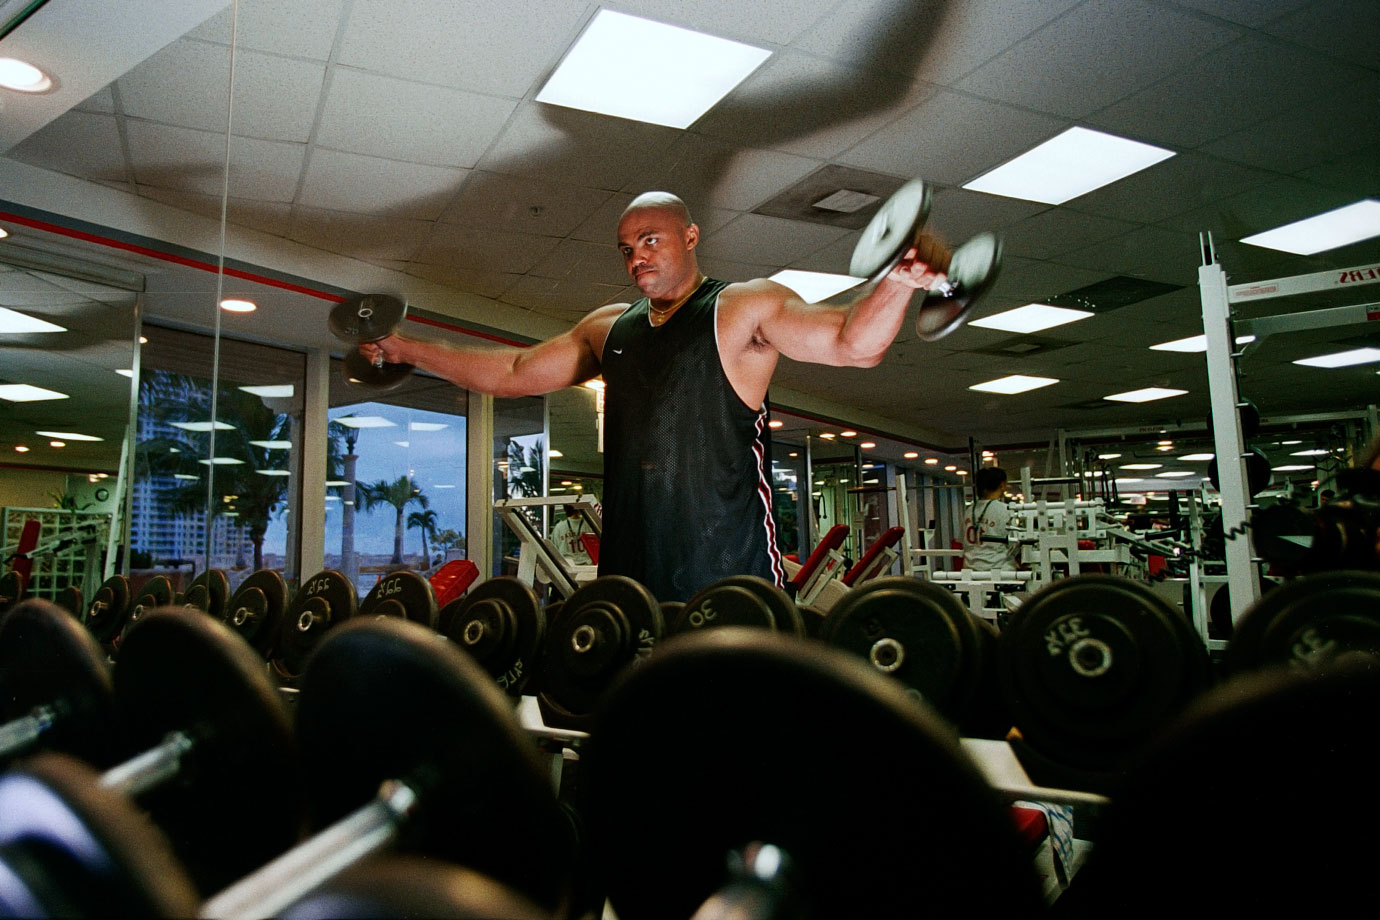 Charles Barkley lifts weights in a gym.